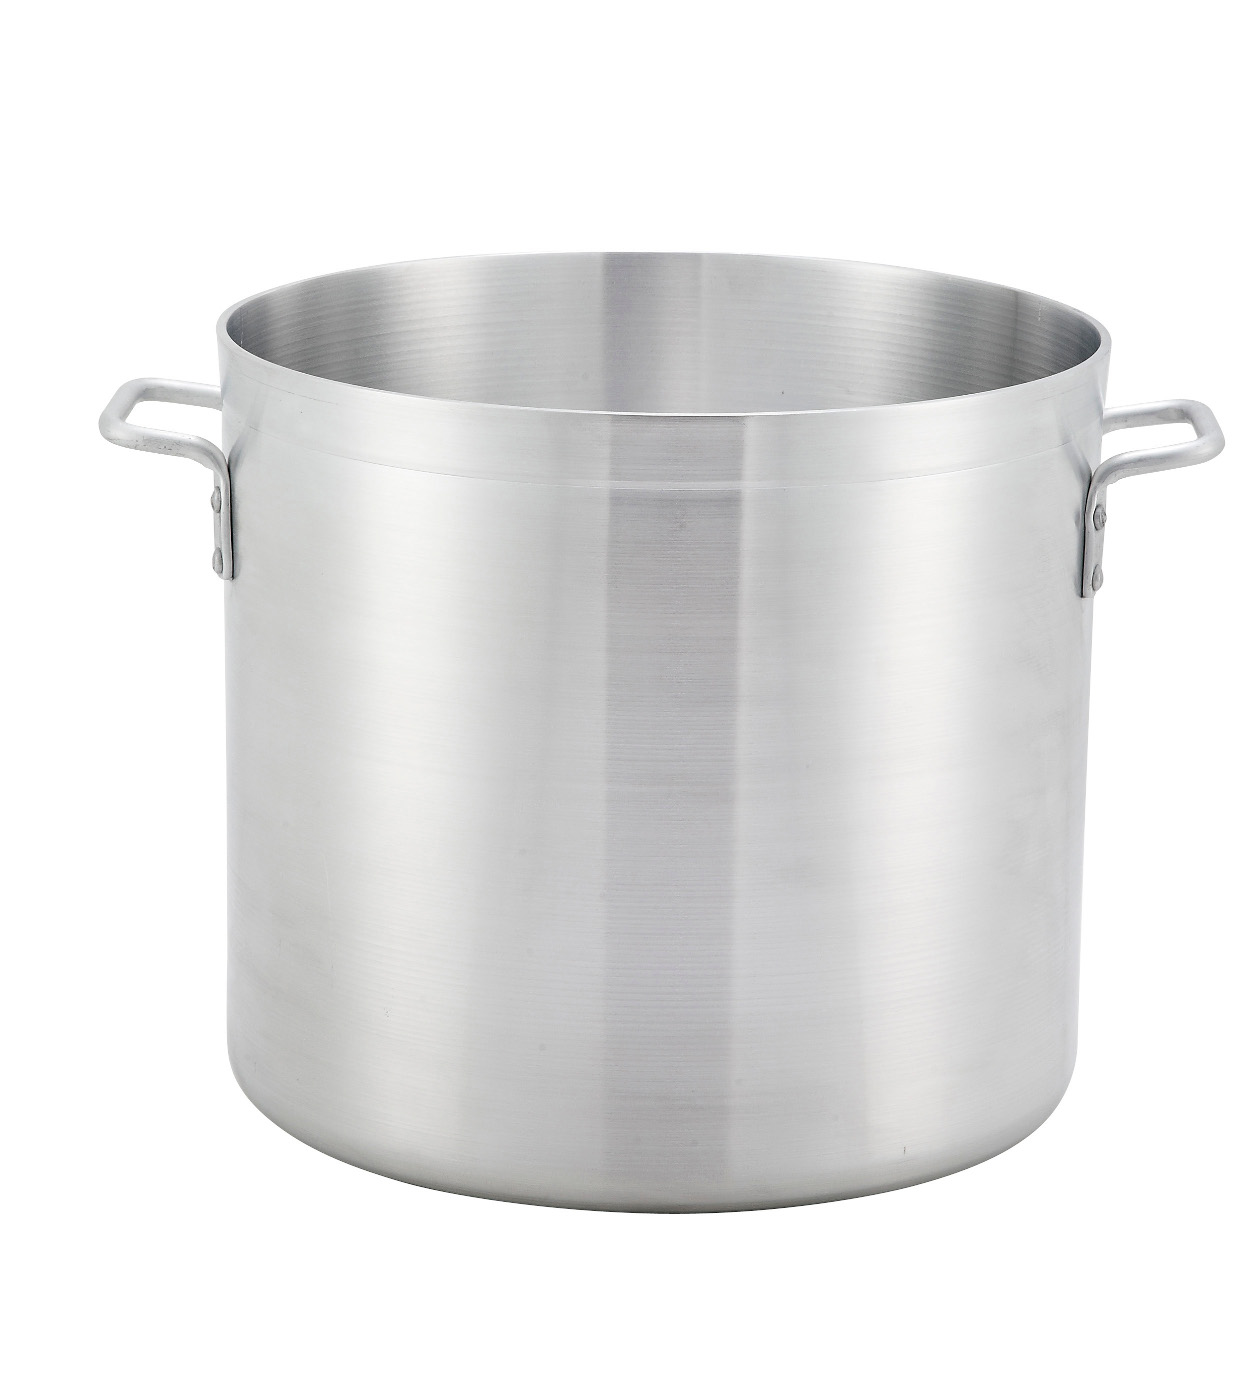 Aluminum Stock Pot 12 Qt, 4.0 MM, 9.8